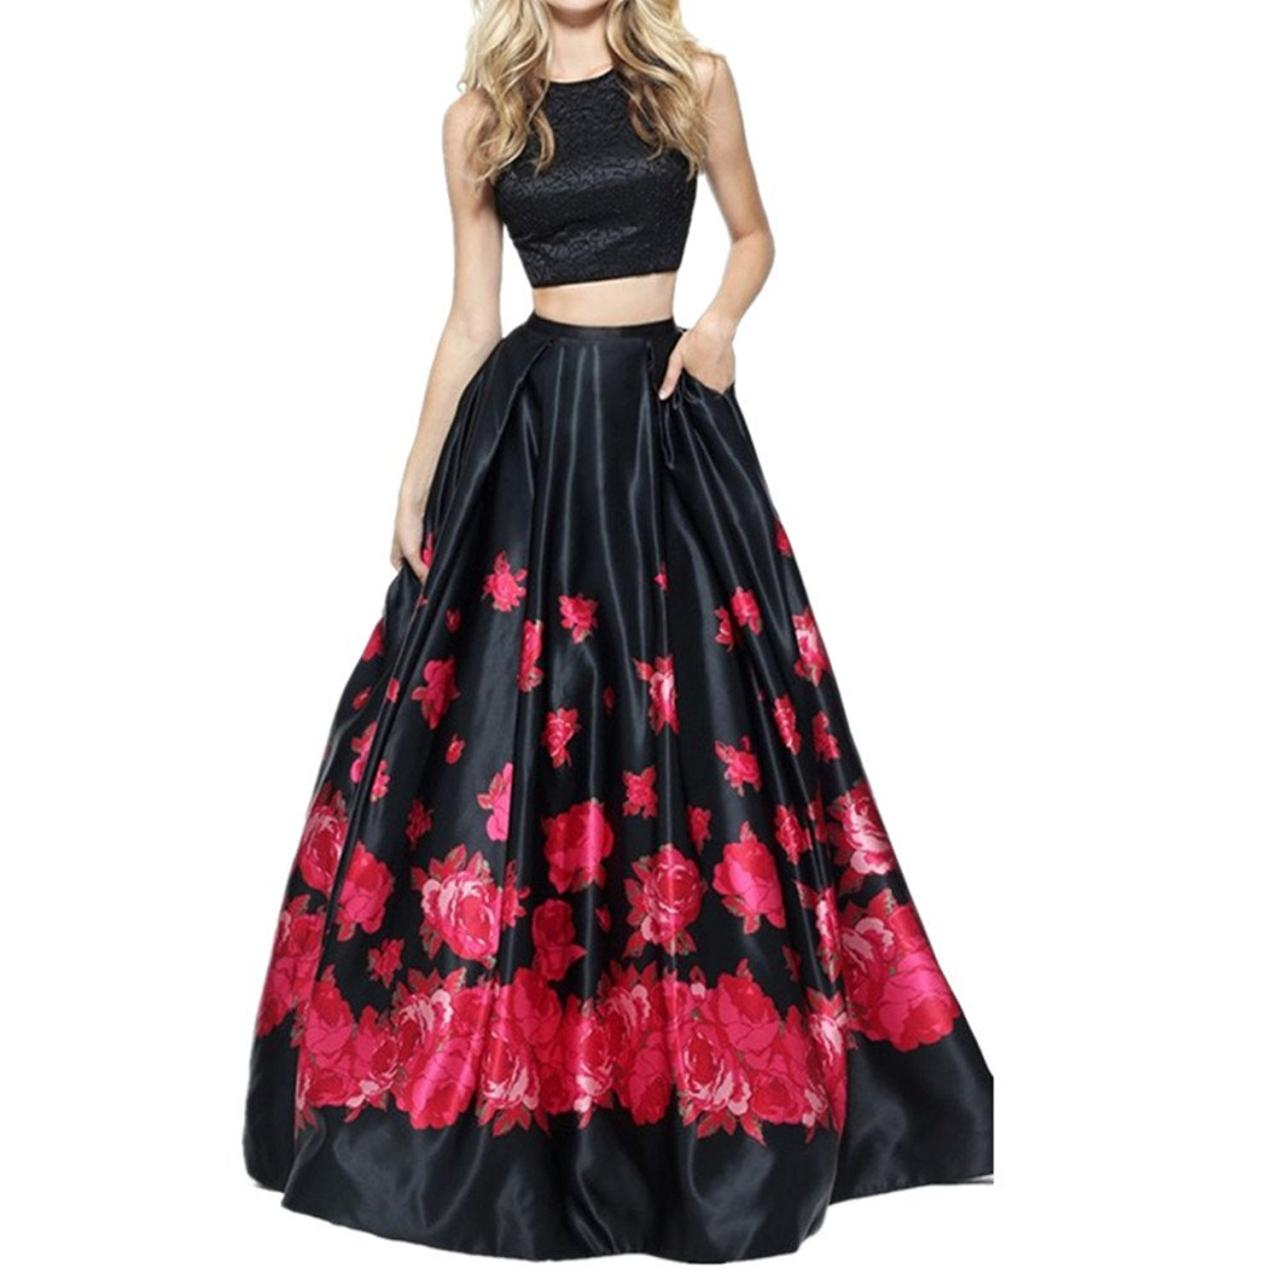 Floral Printed 2 Pieces Prom Dresses Backless Party Gowns Plus Size ...